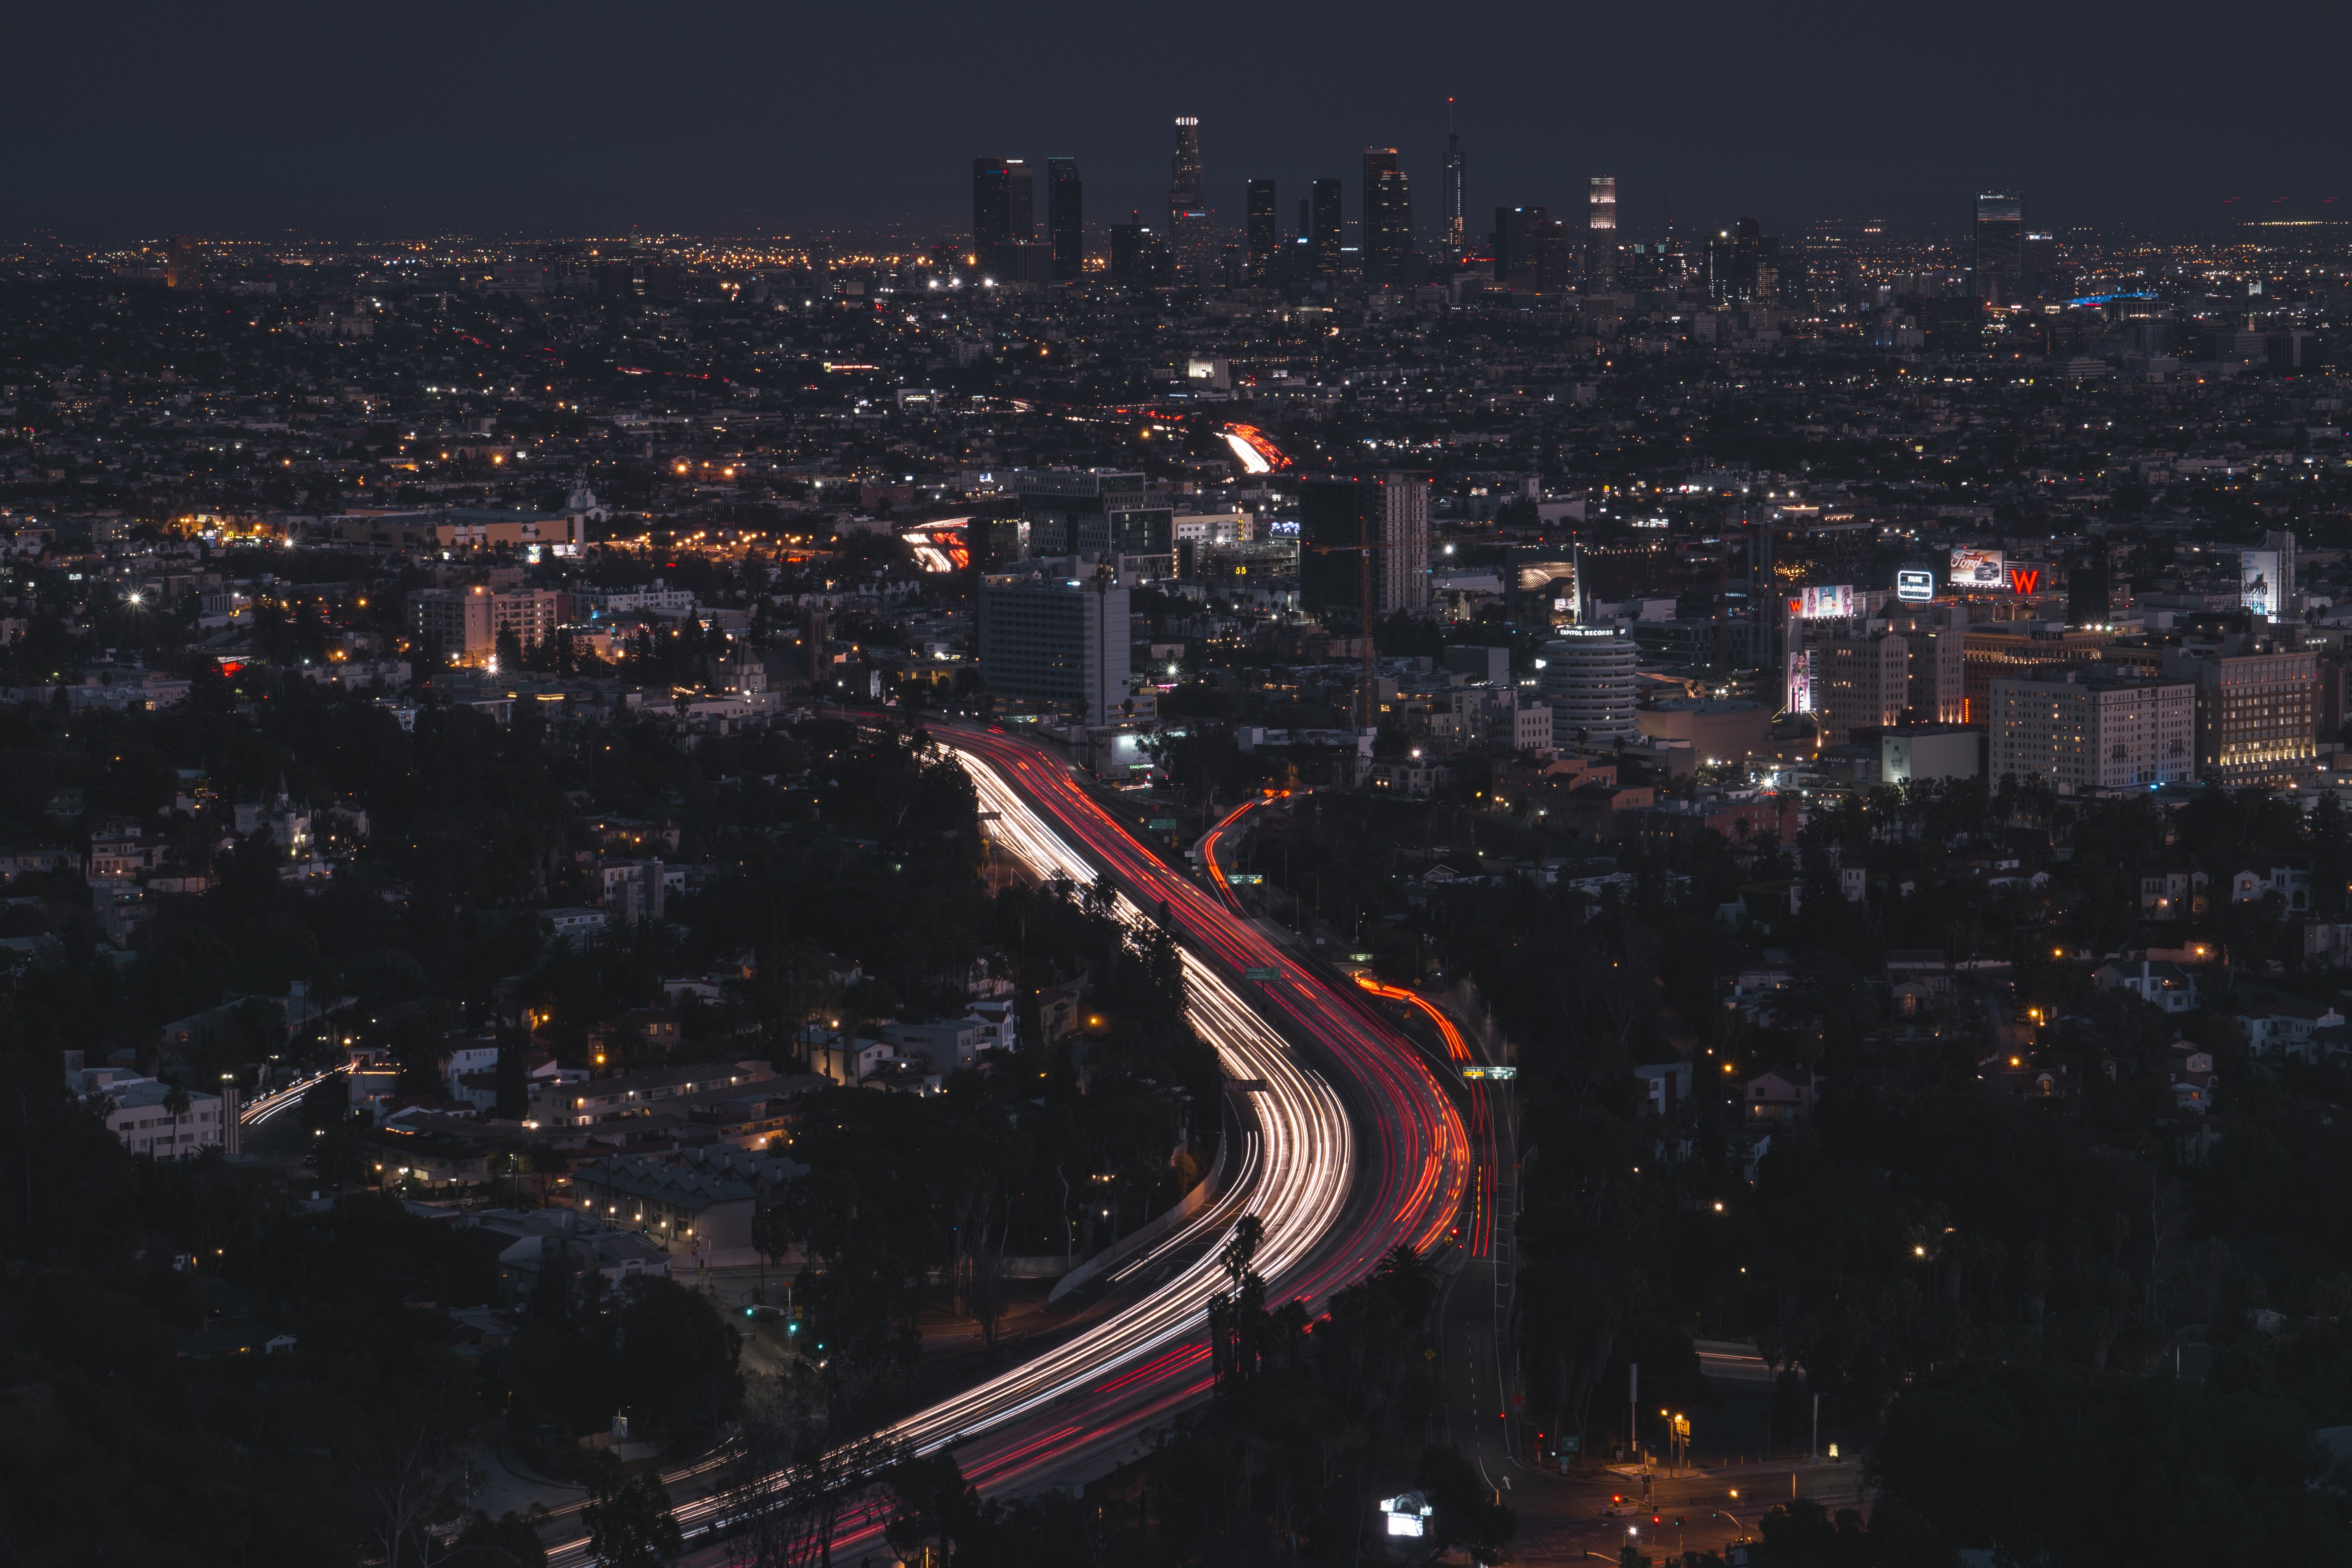 timelapse photo of cityscape with lights